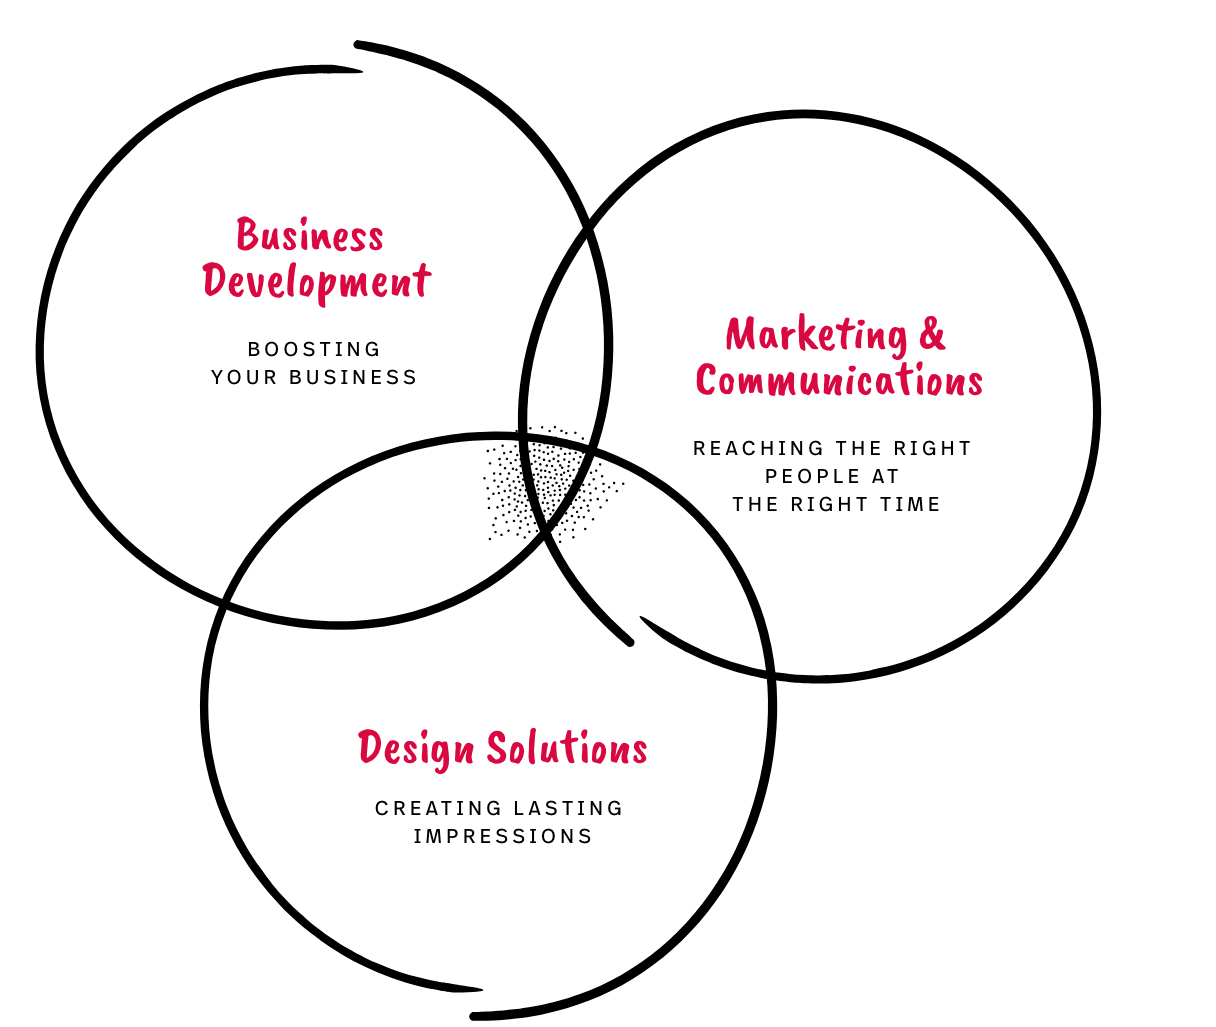 The three pillars of GUTJAHR: Business Development, Marketing & Communication and Design Solutions